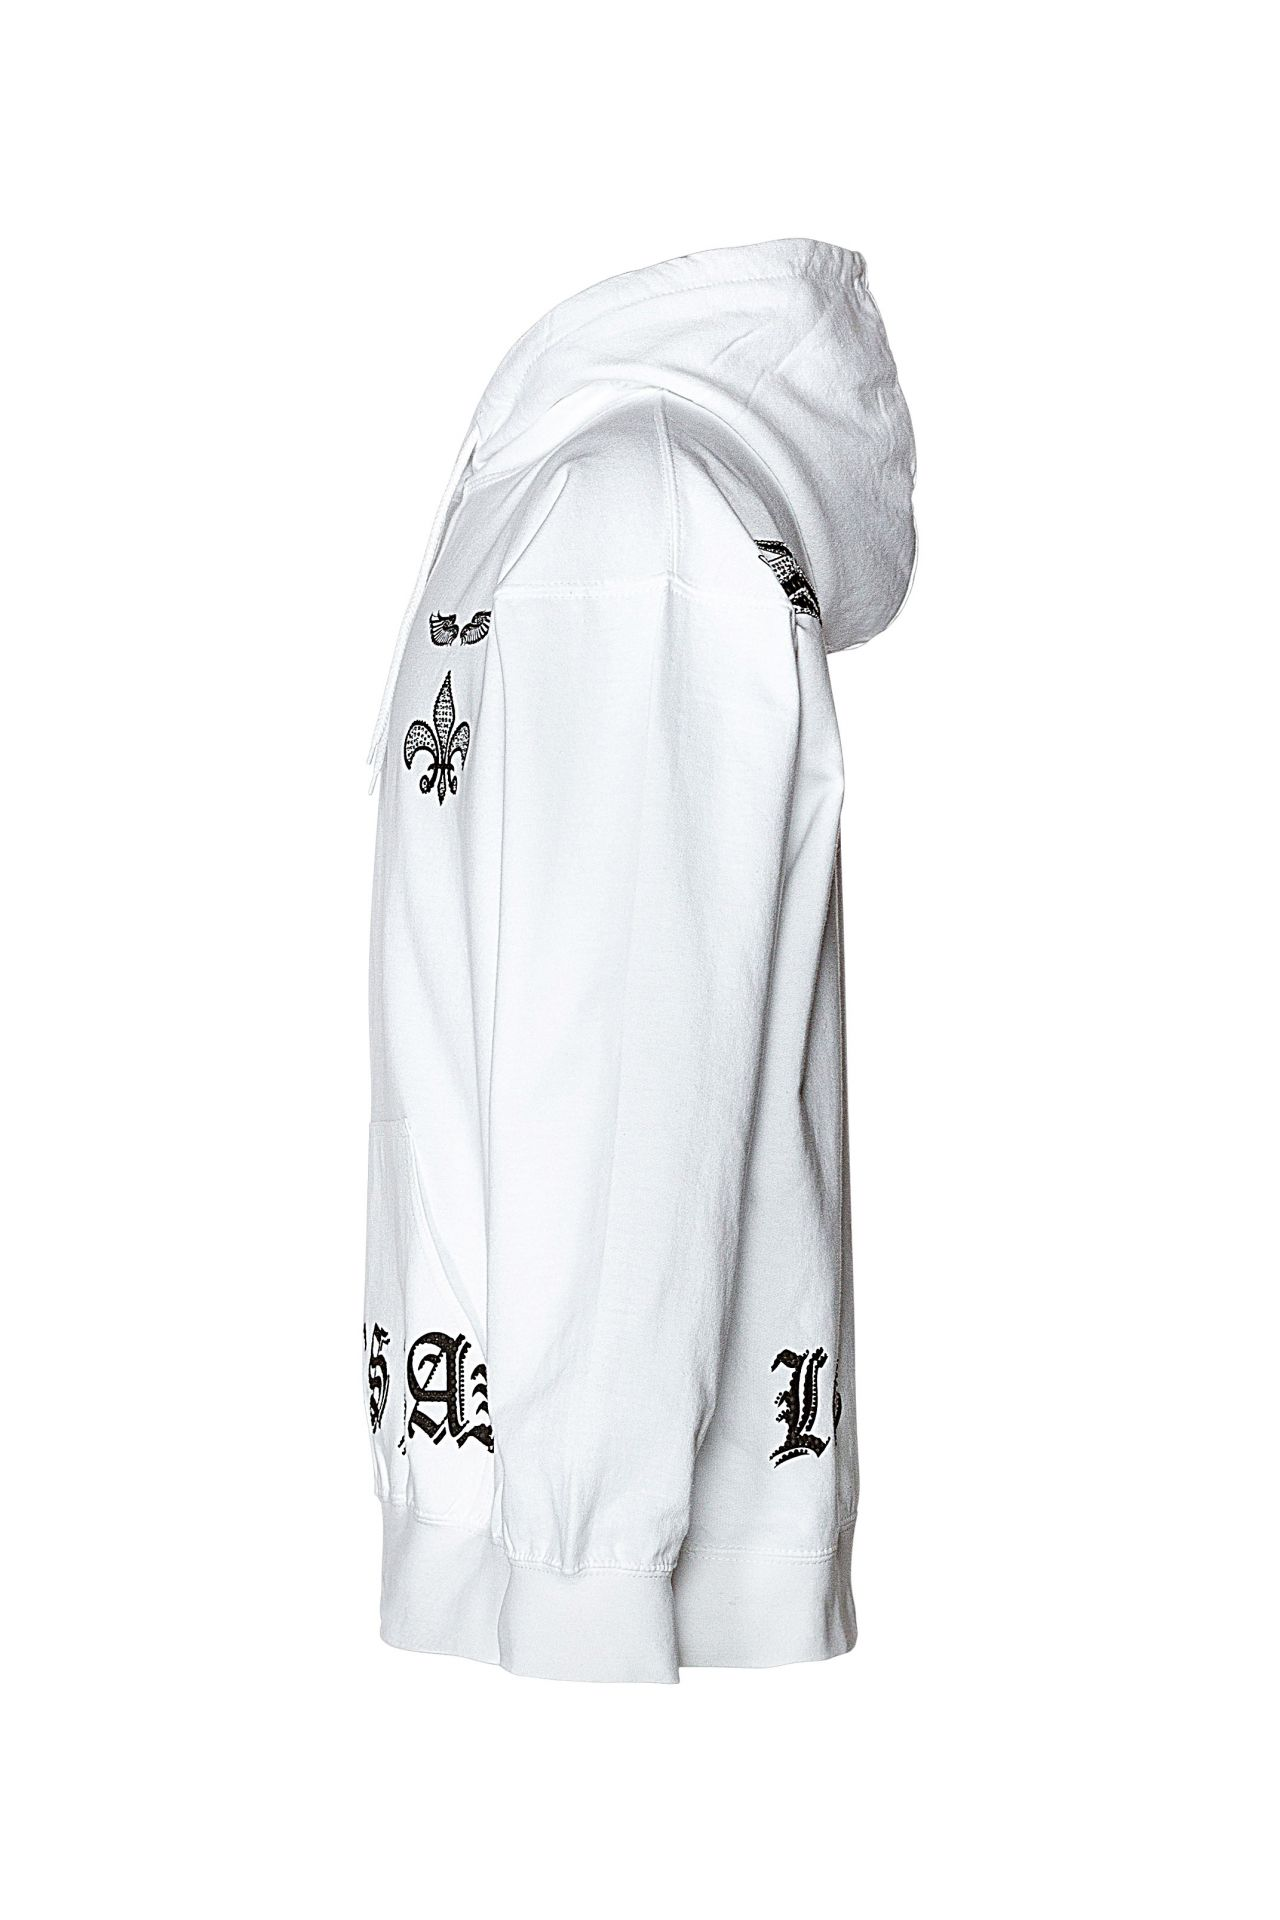 WINGS HOODIE IN WHITE WITH CRYSTALS